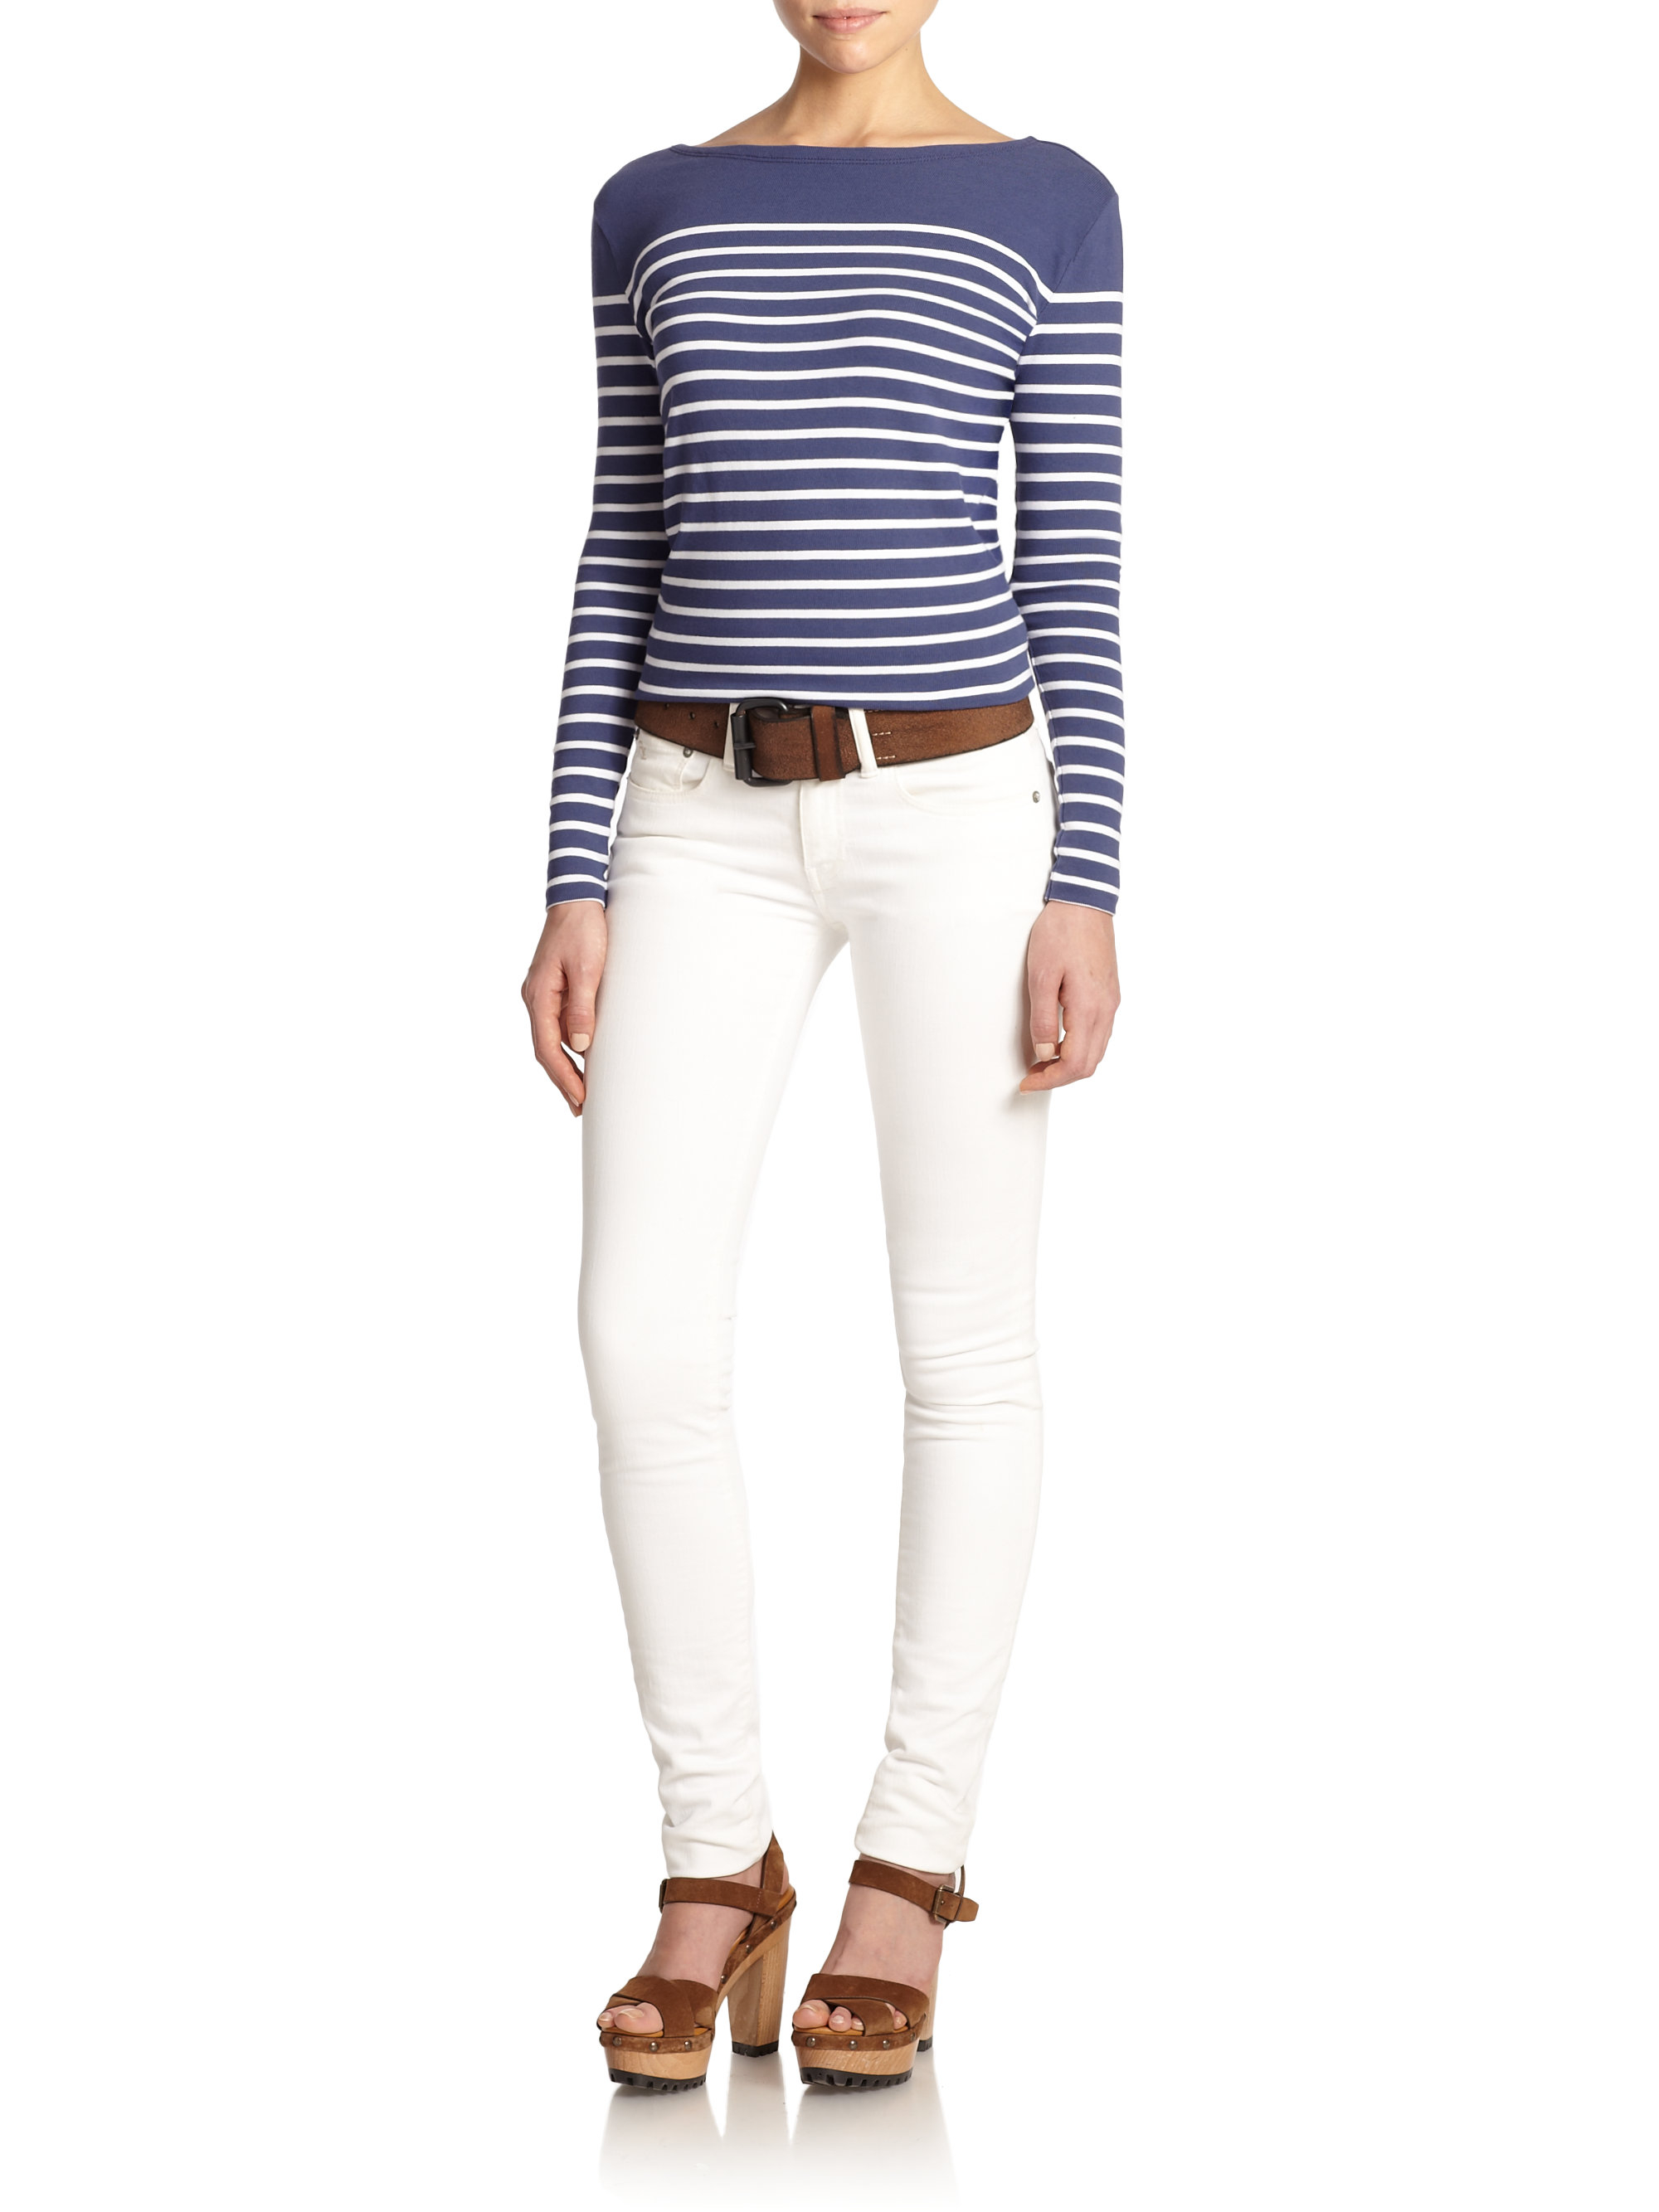 polo ralph lauren striped long sleeve tee in blue lyst. Black Bedroom Furniture Sets. Home Design Ideas